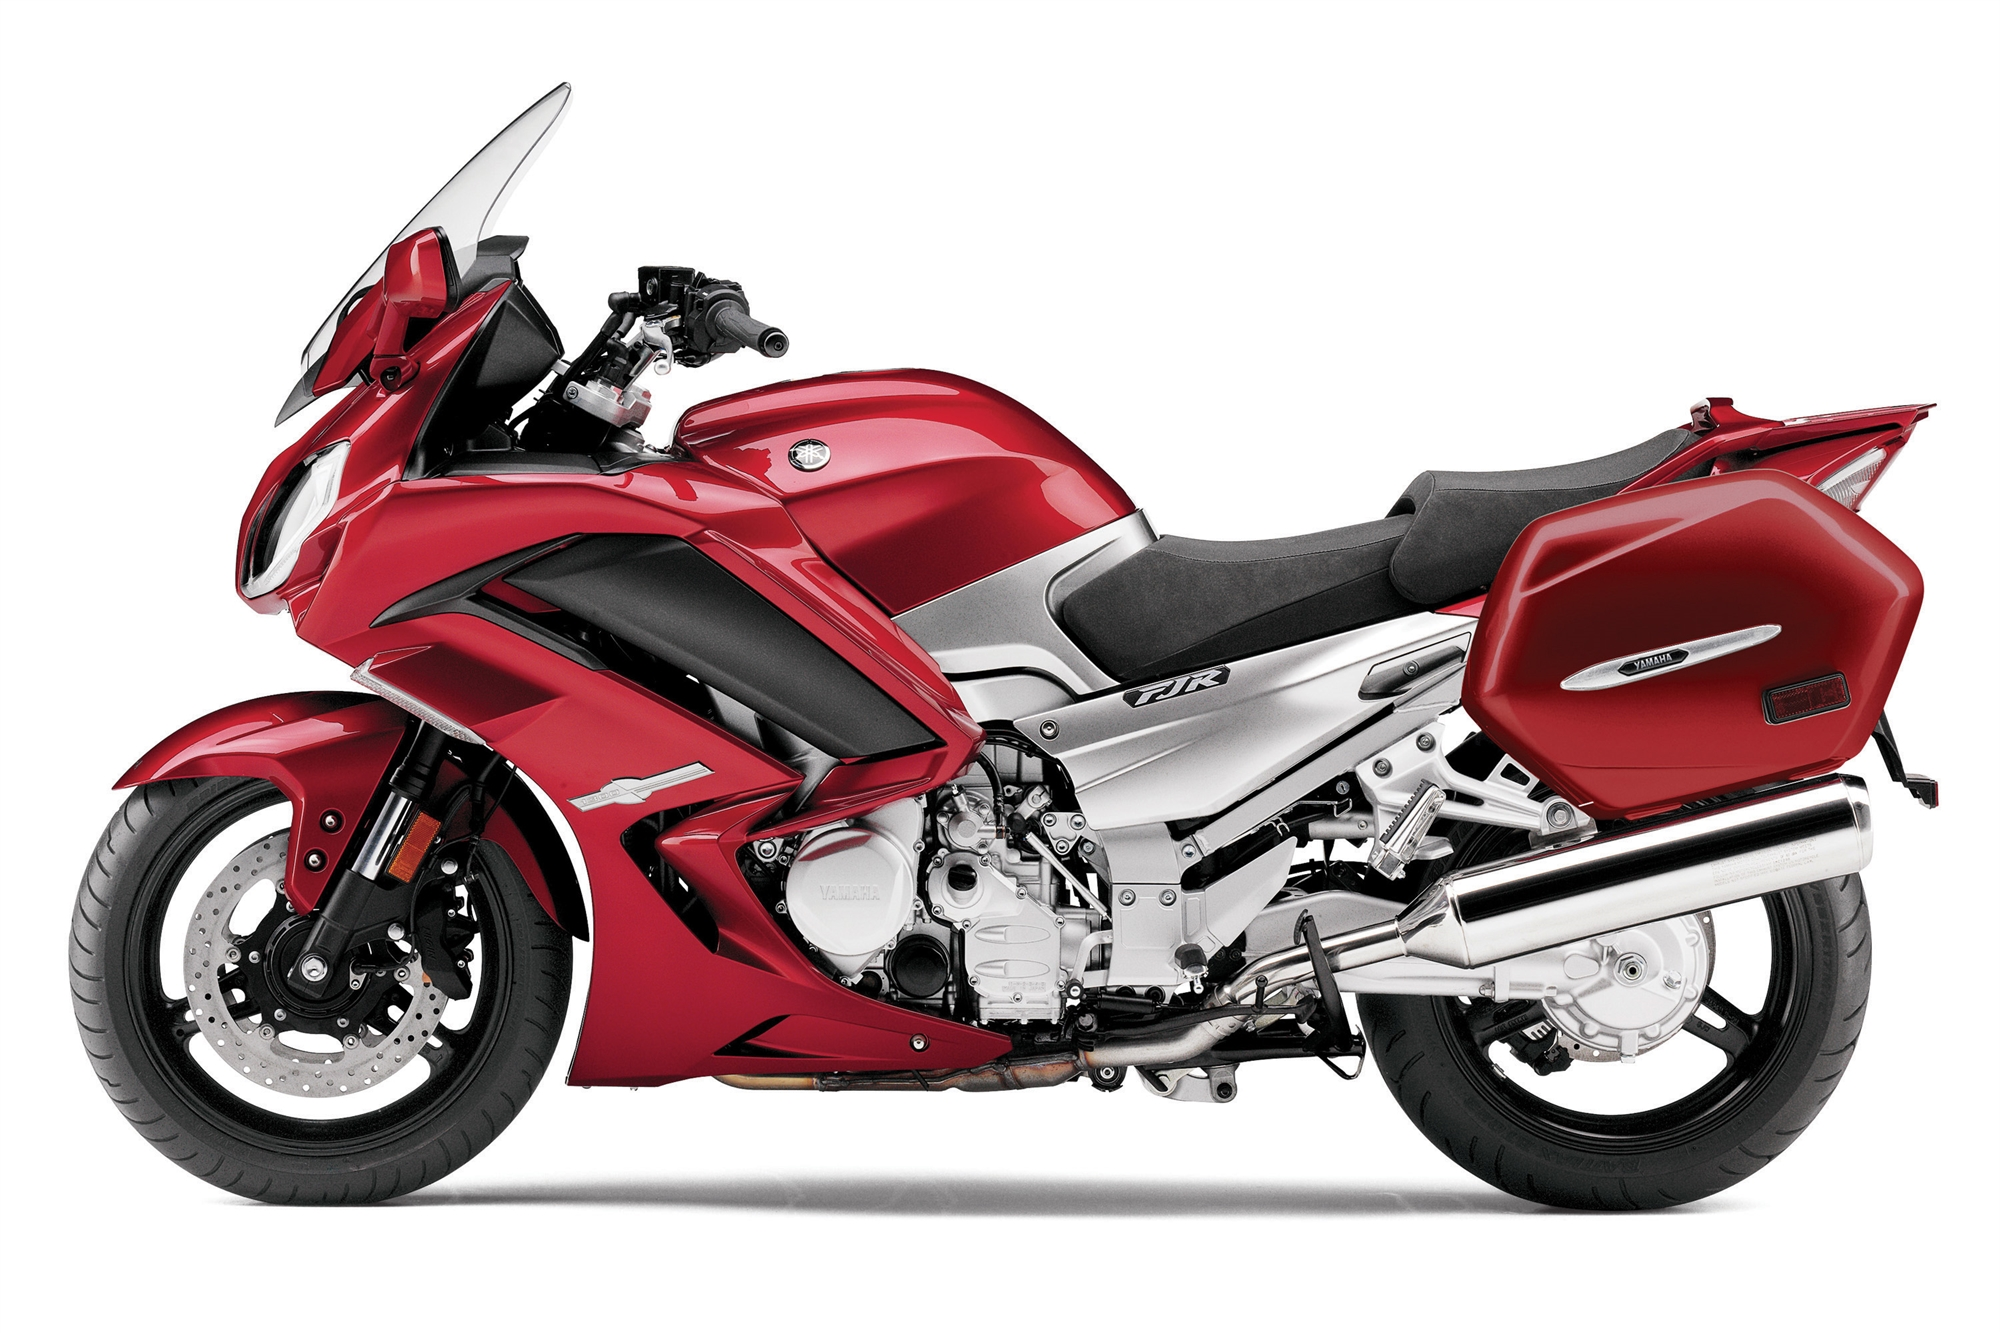 2014 yamaha fjr1300es review top speed. Black Bedroom Furniture Sets. Home Design Ideas